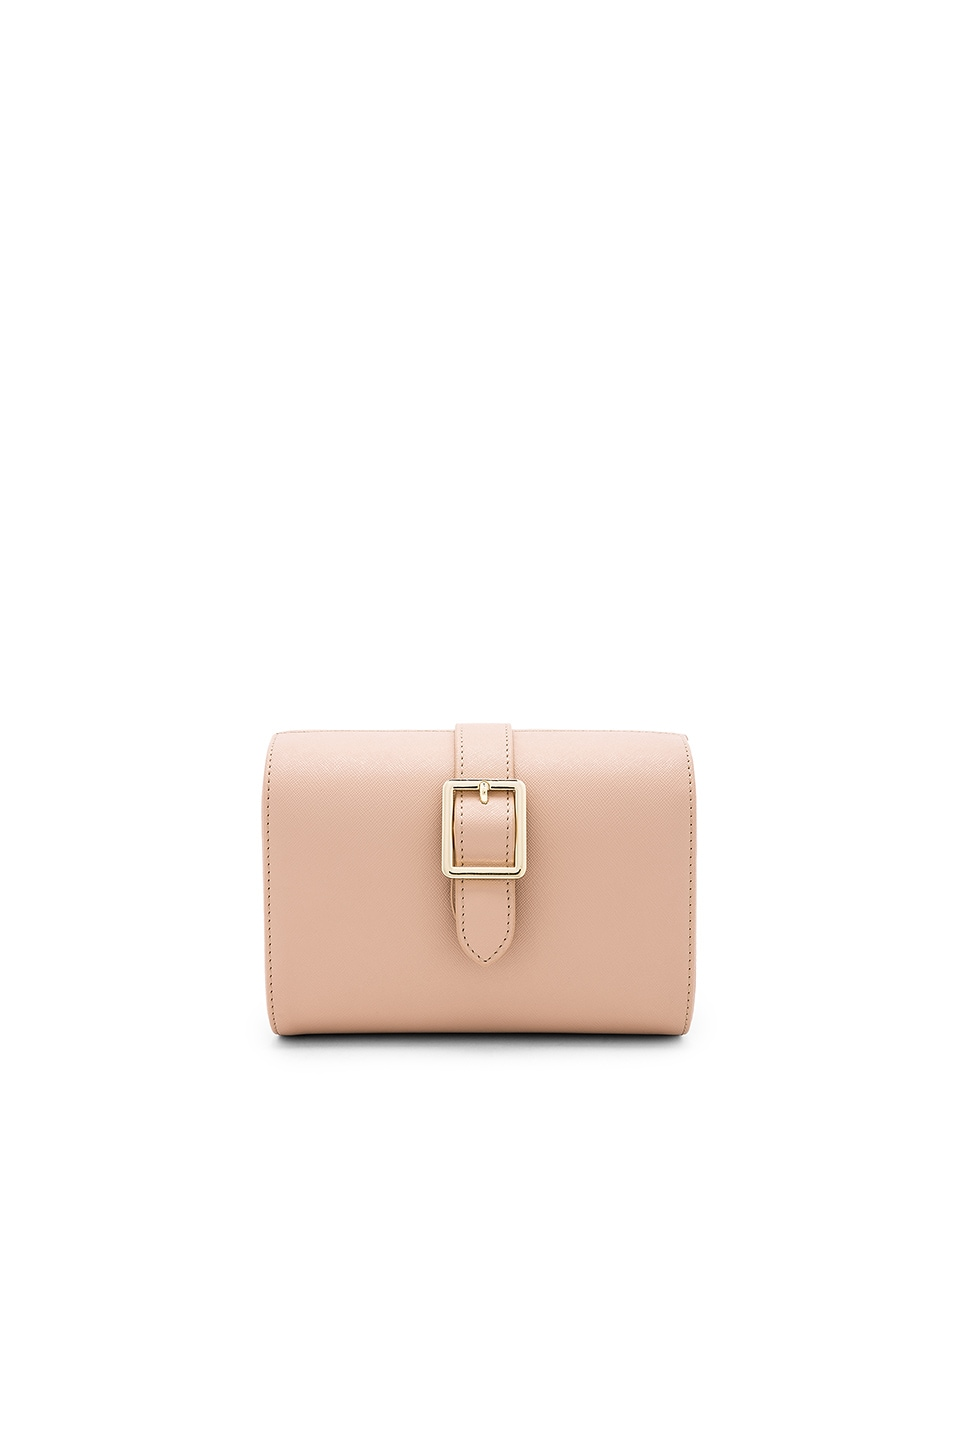 BUCKLE CLUTCH